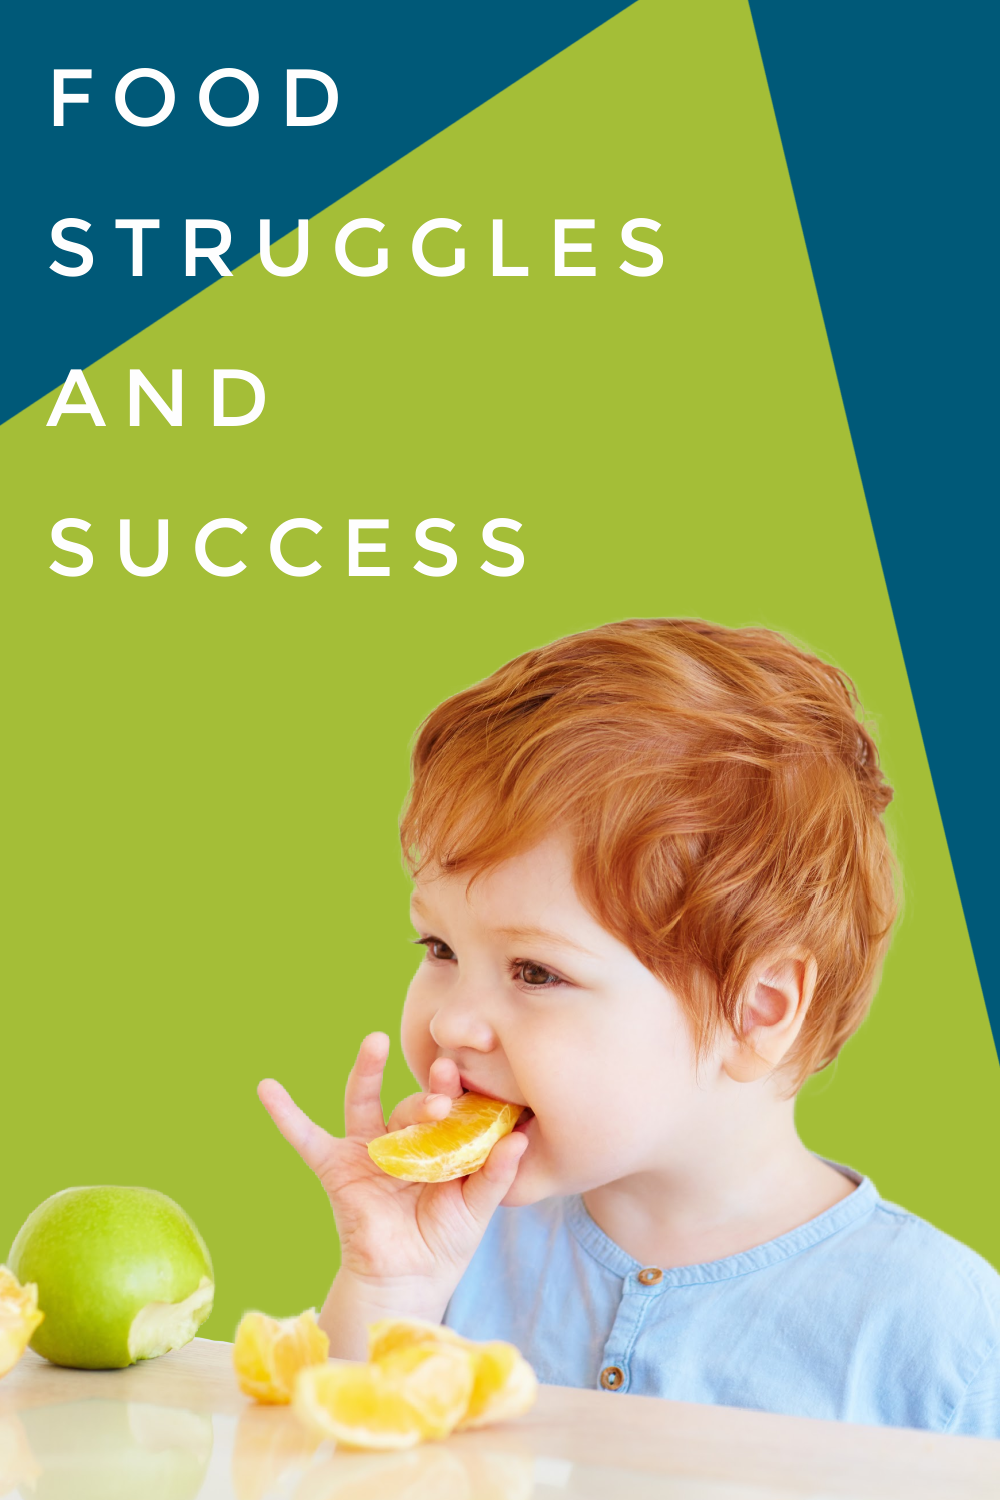 In this Montessori parenting podcast we discuss our challenges and successes around food including how we provide routine, structure, and choice.